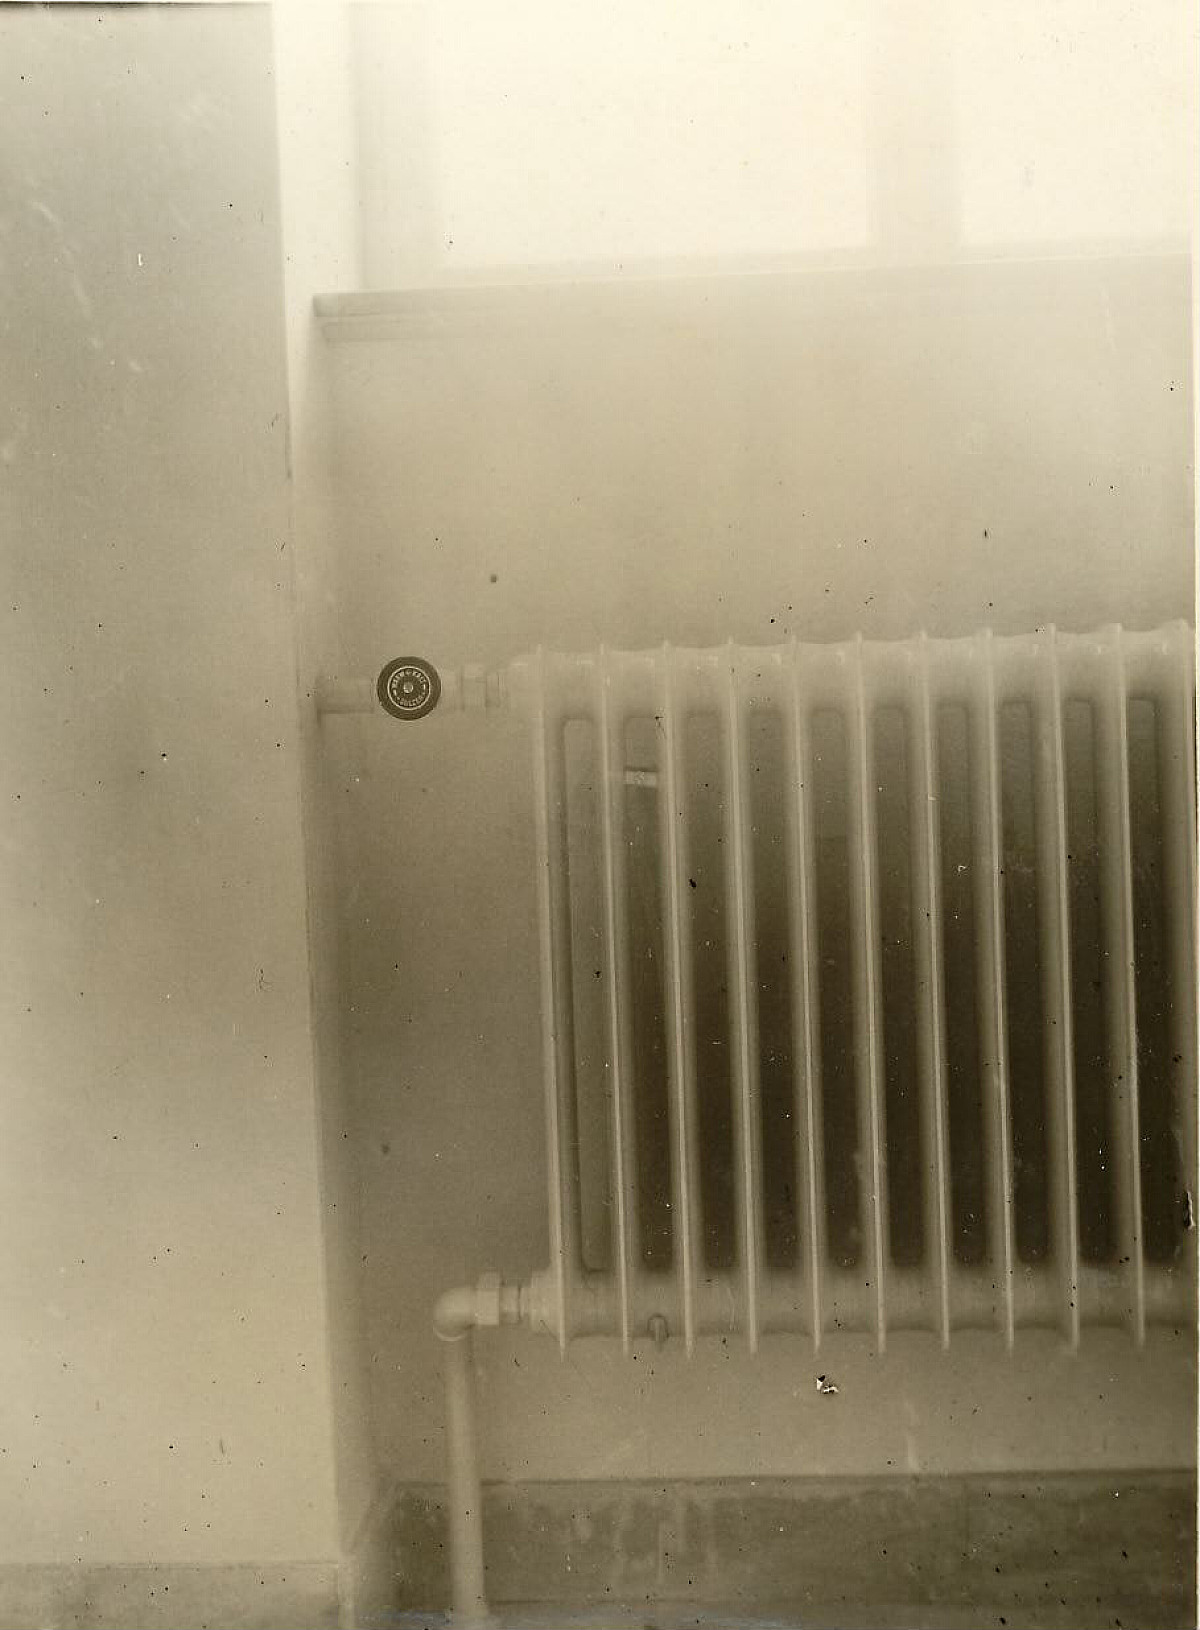 GFA 24/54.1536: Heating